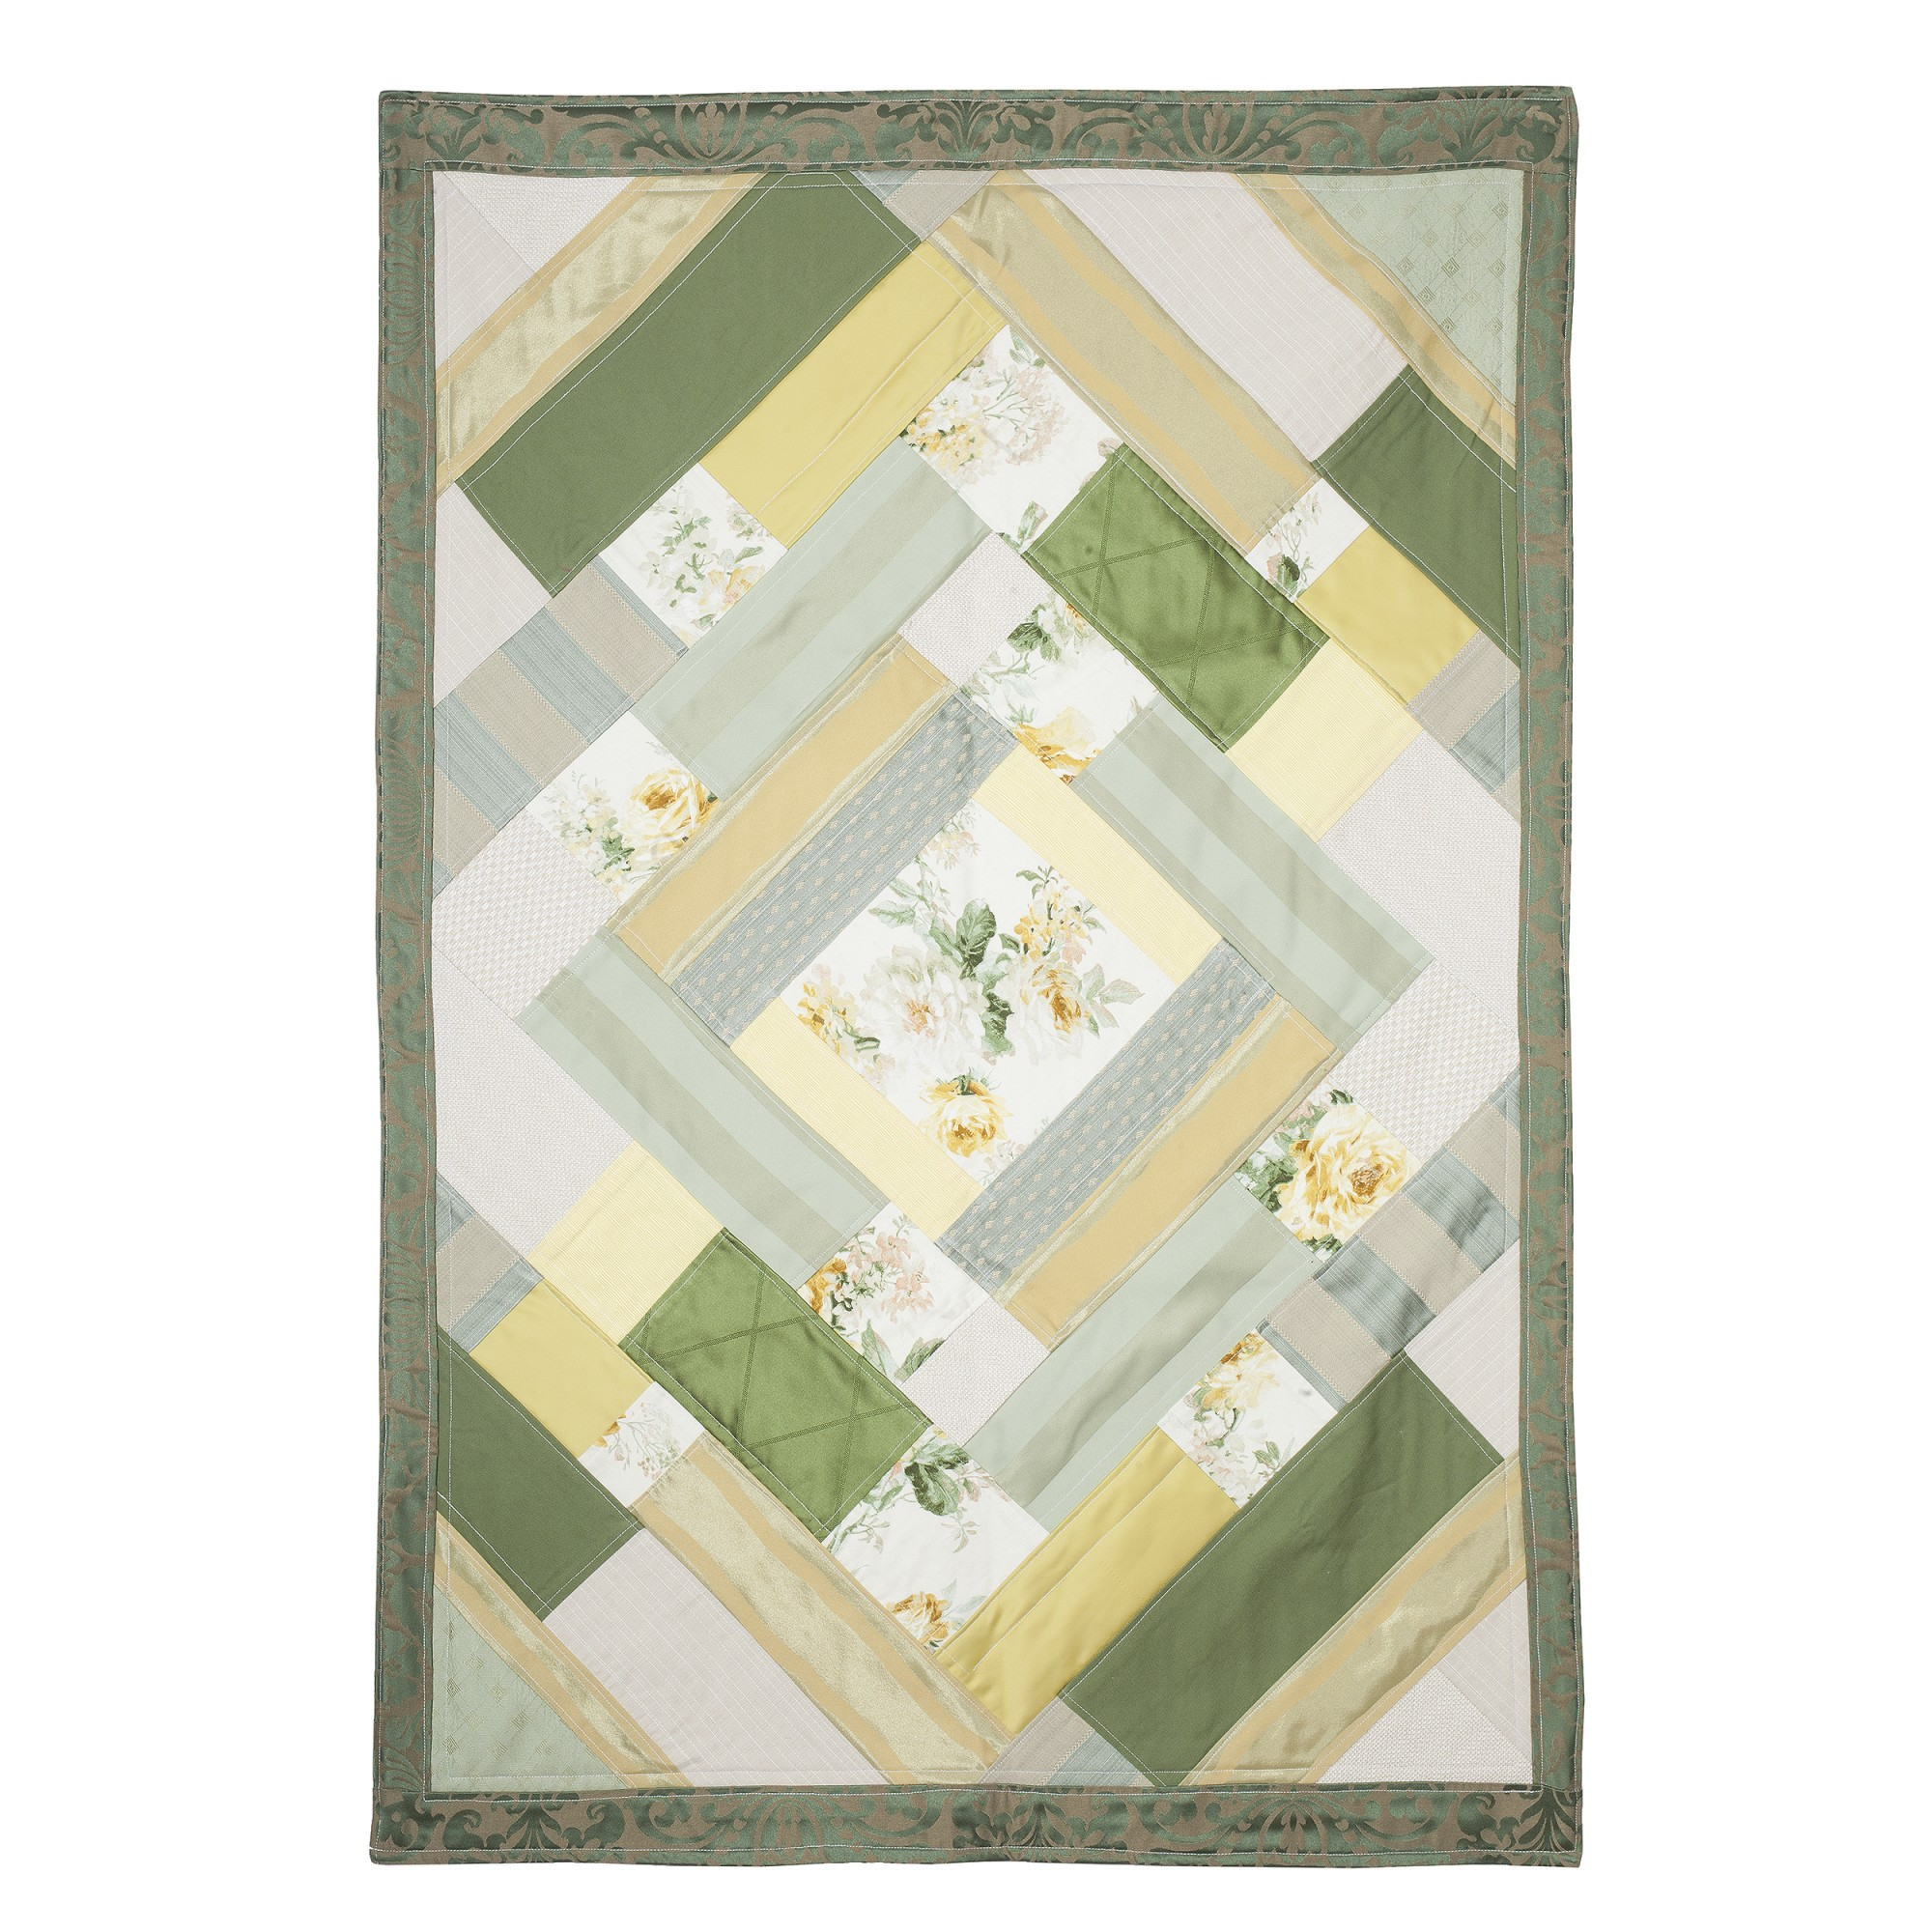 Tappeto Turco Grigio Tappeto Patchwork Perfect Tappeto Patchwork With Tappeto